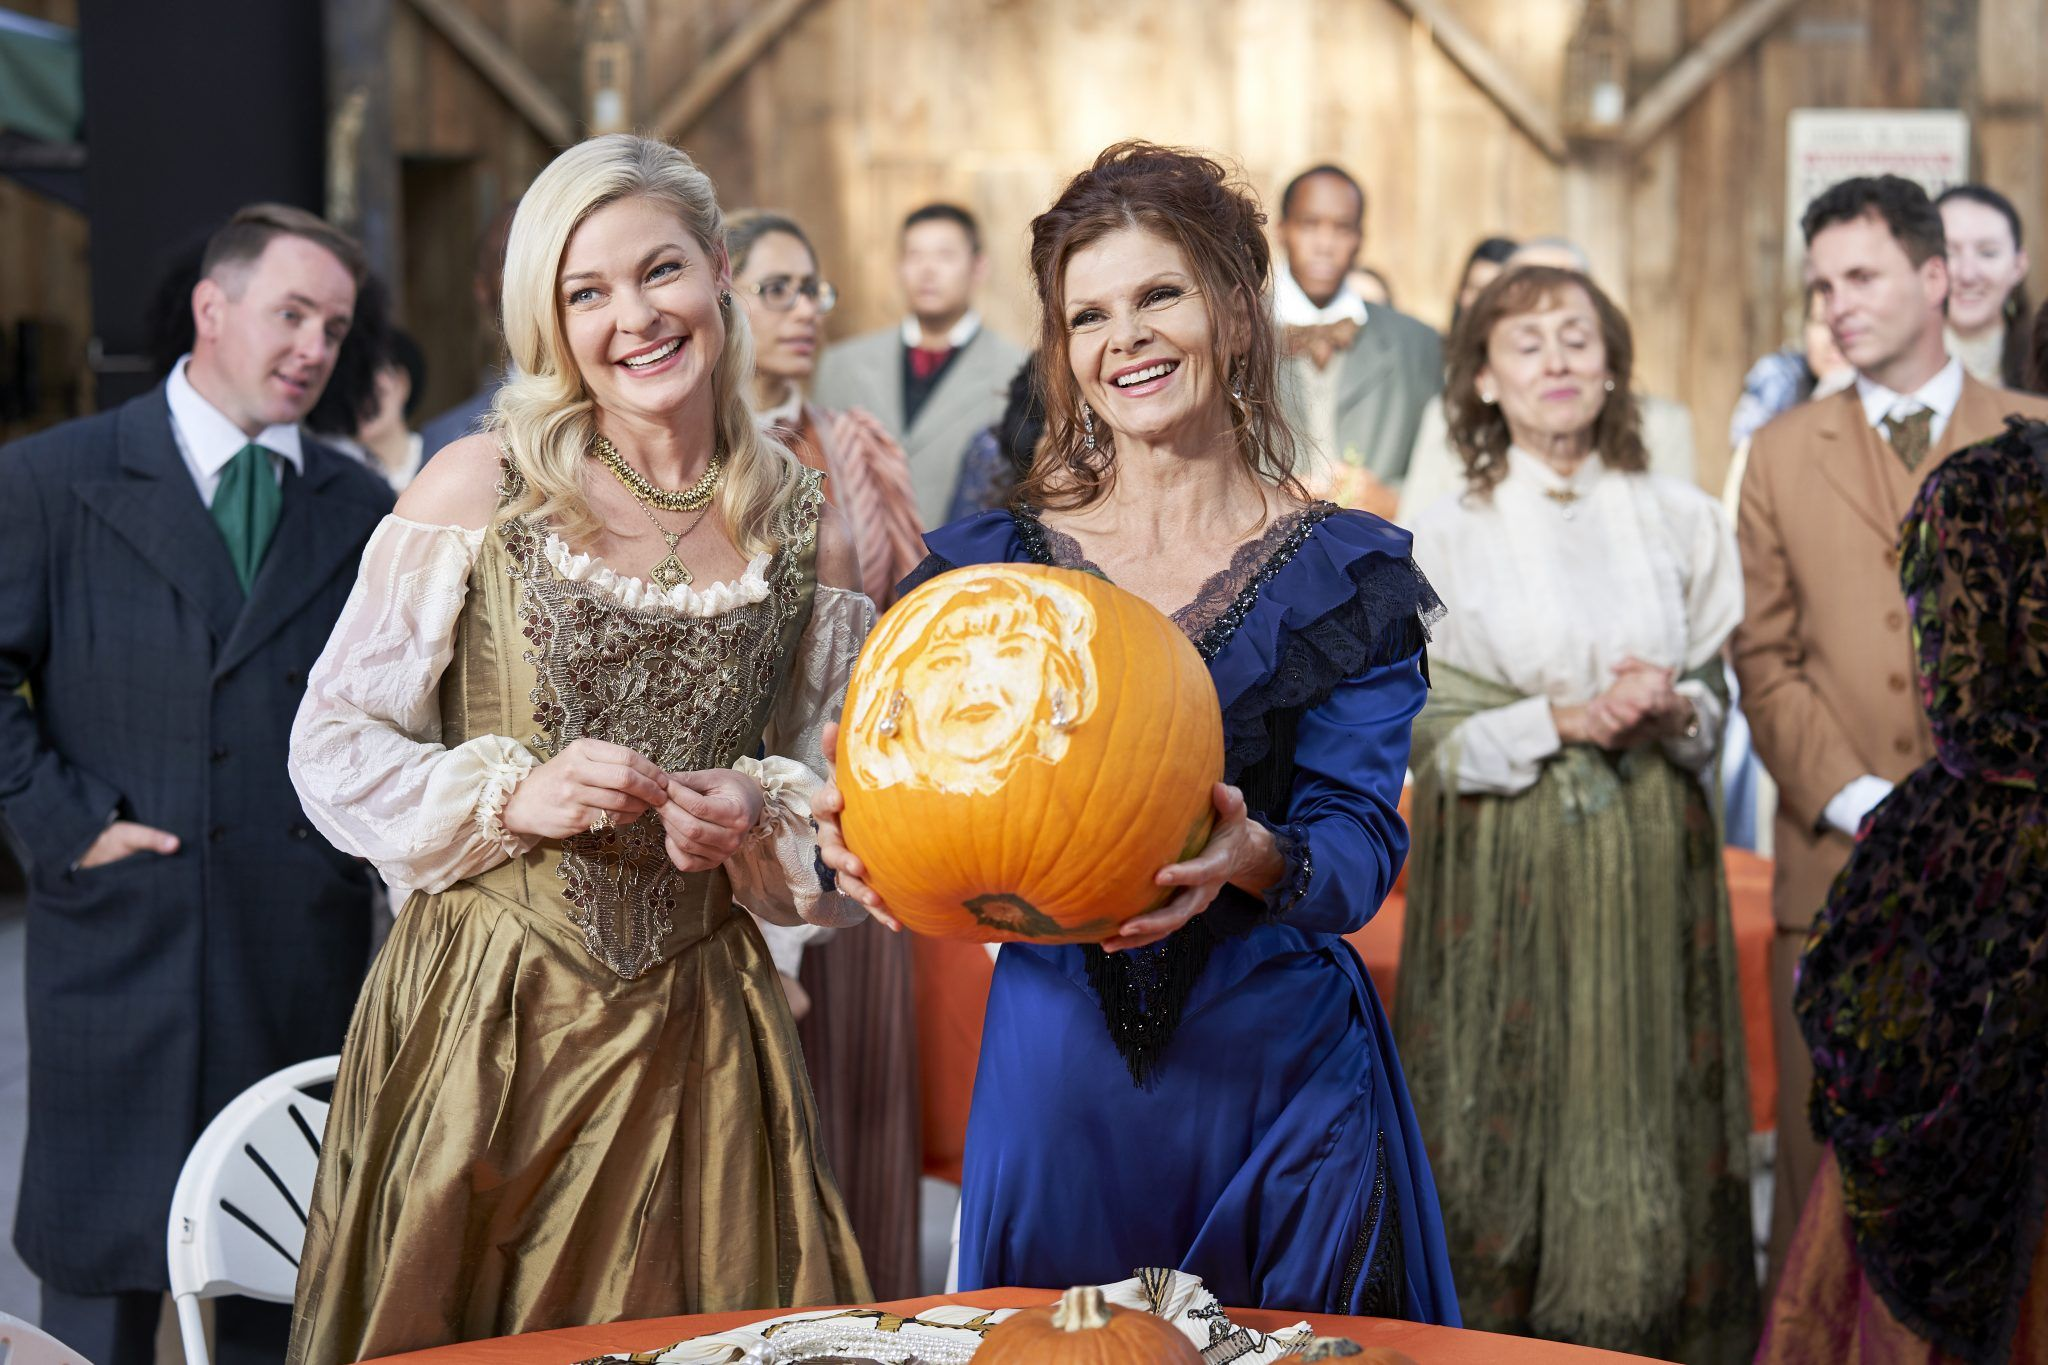 Preview Of Good Witch Halloween 2020 Will Hallmark Do A 'Good Witch' Halloween Special Movie For 2020